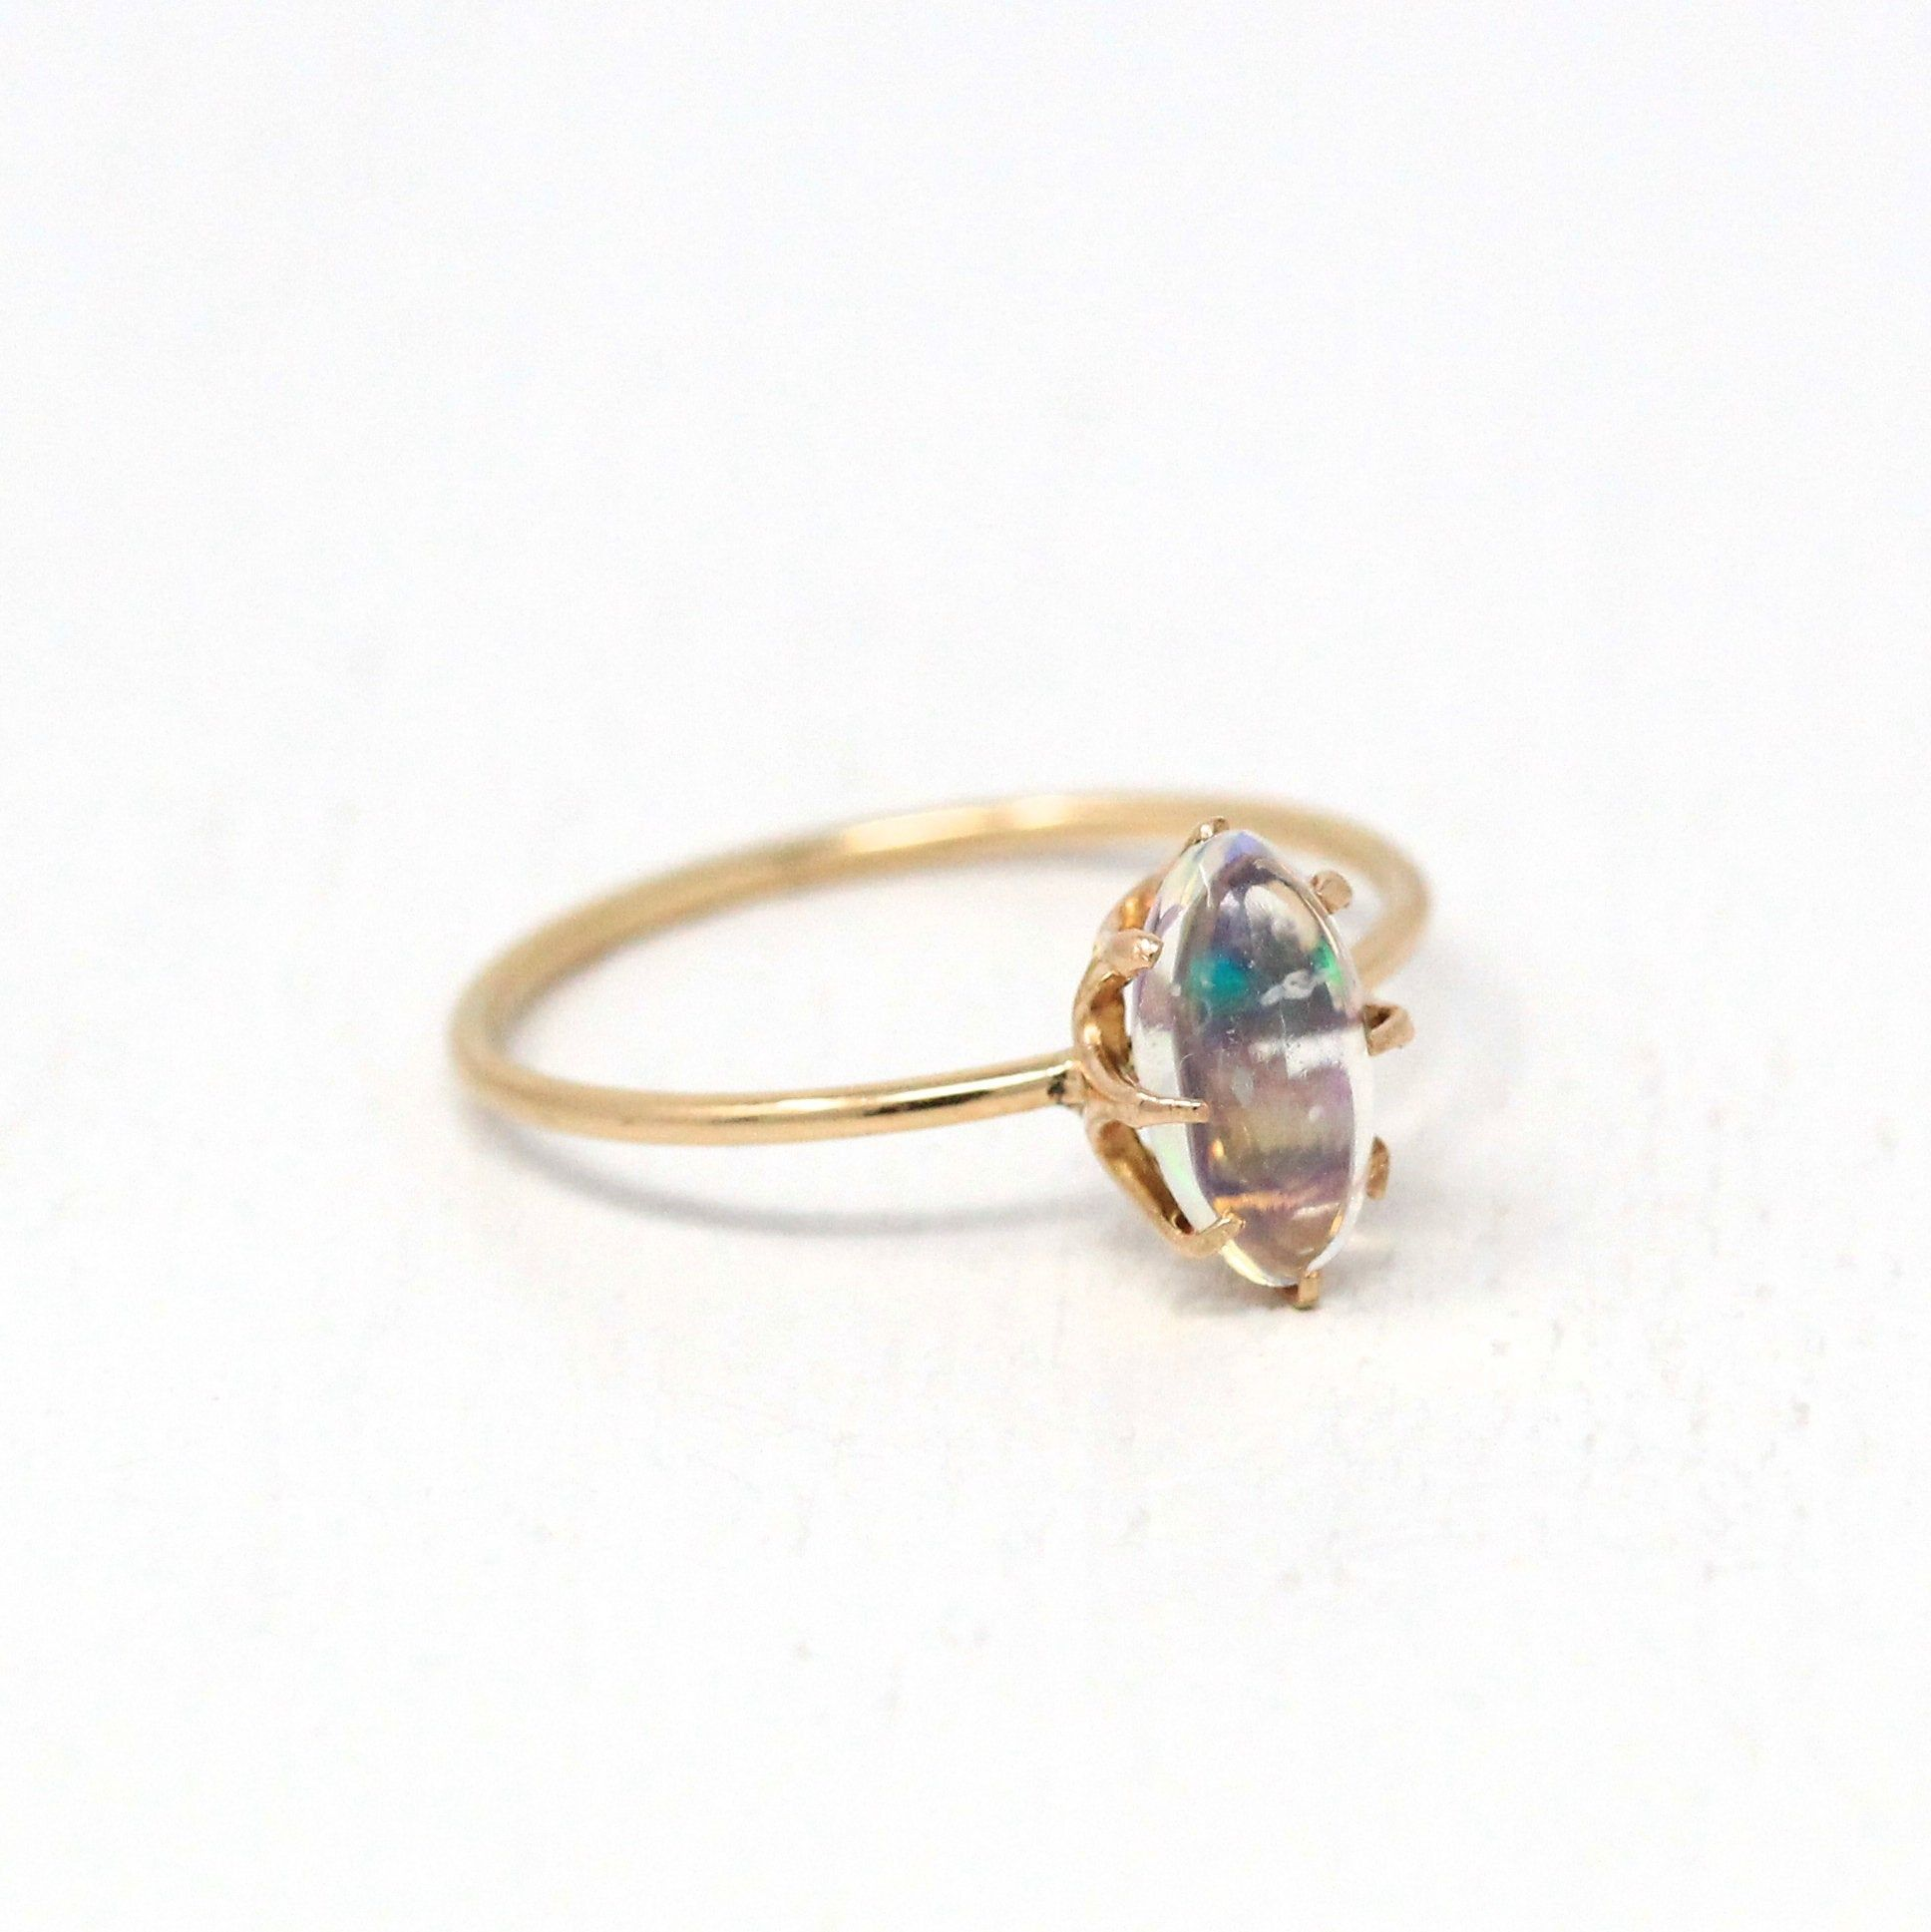 Reserved Sold To Sarah Via Layaway 1st Payment Jelly Opal Etsy In 2020 Jelly Opal Antique Opal Ring Antique Rings